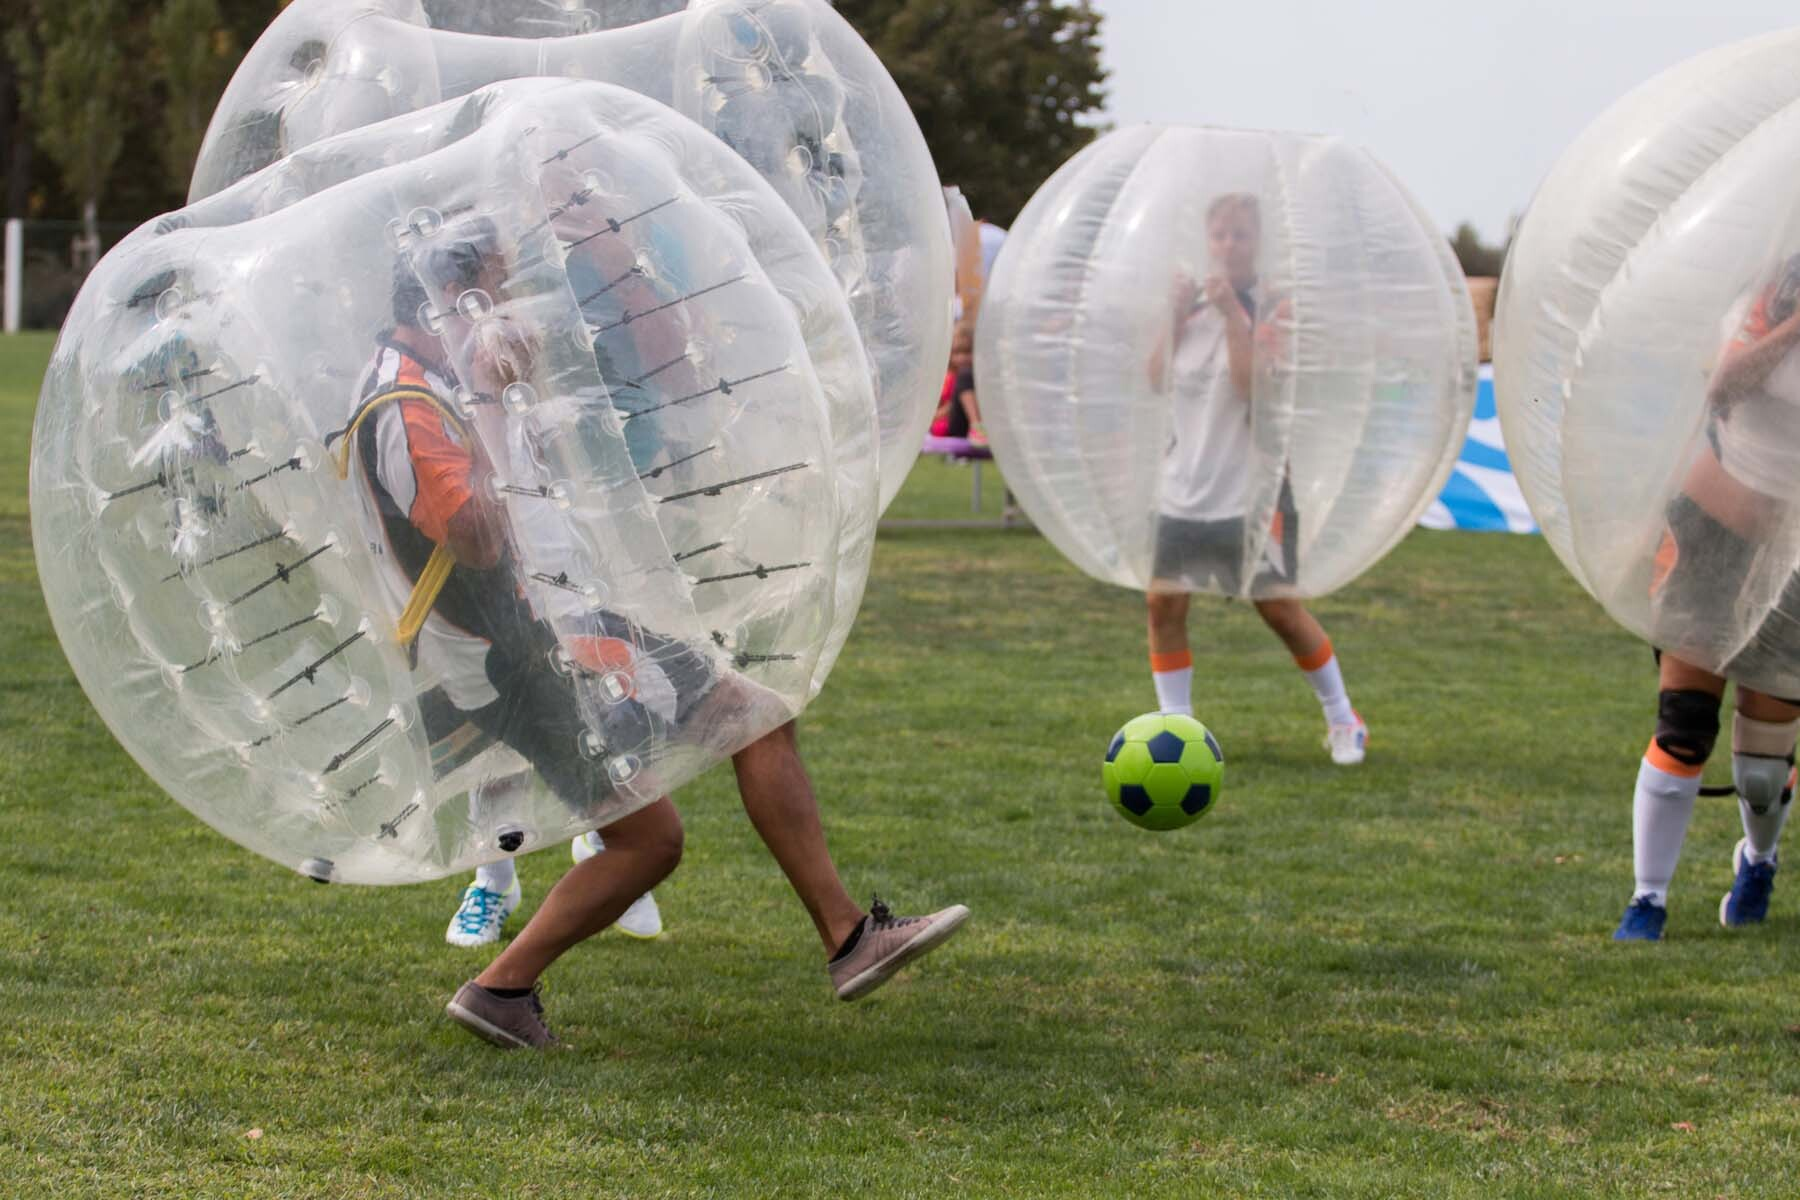 Bubble football at a stag party